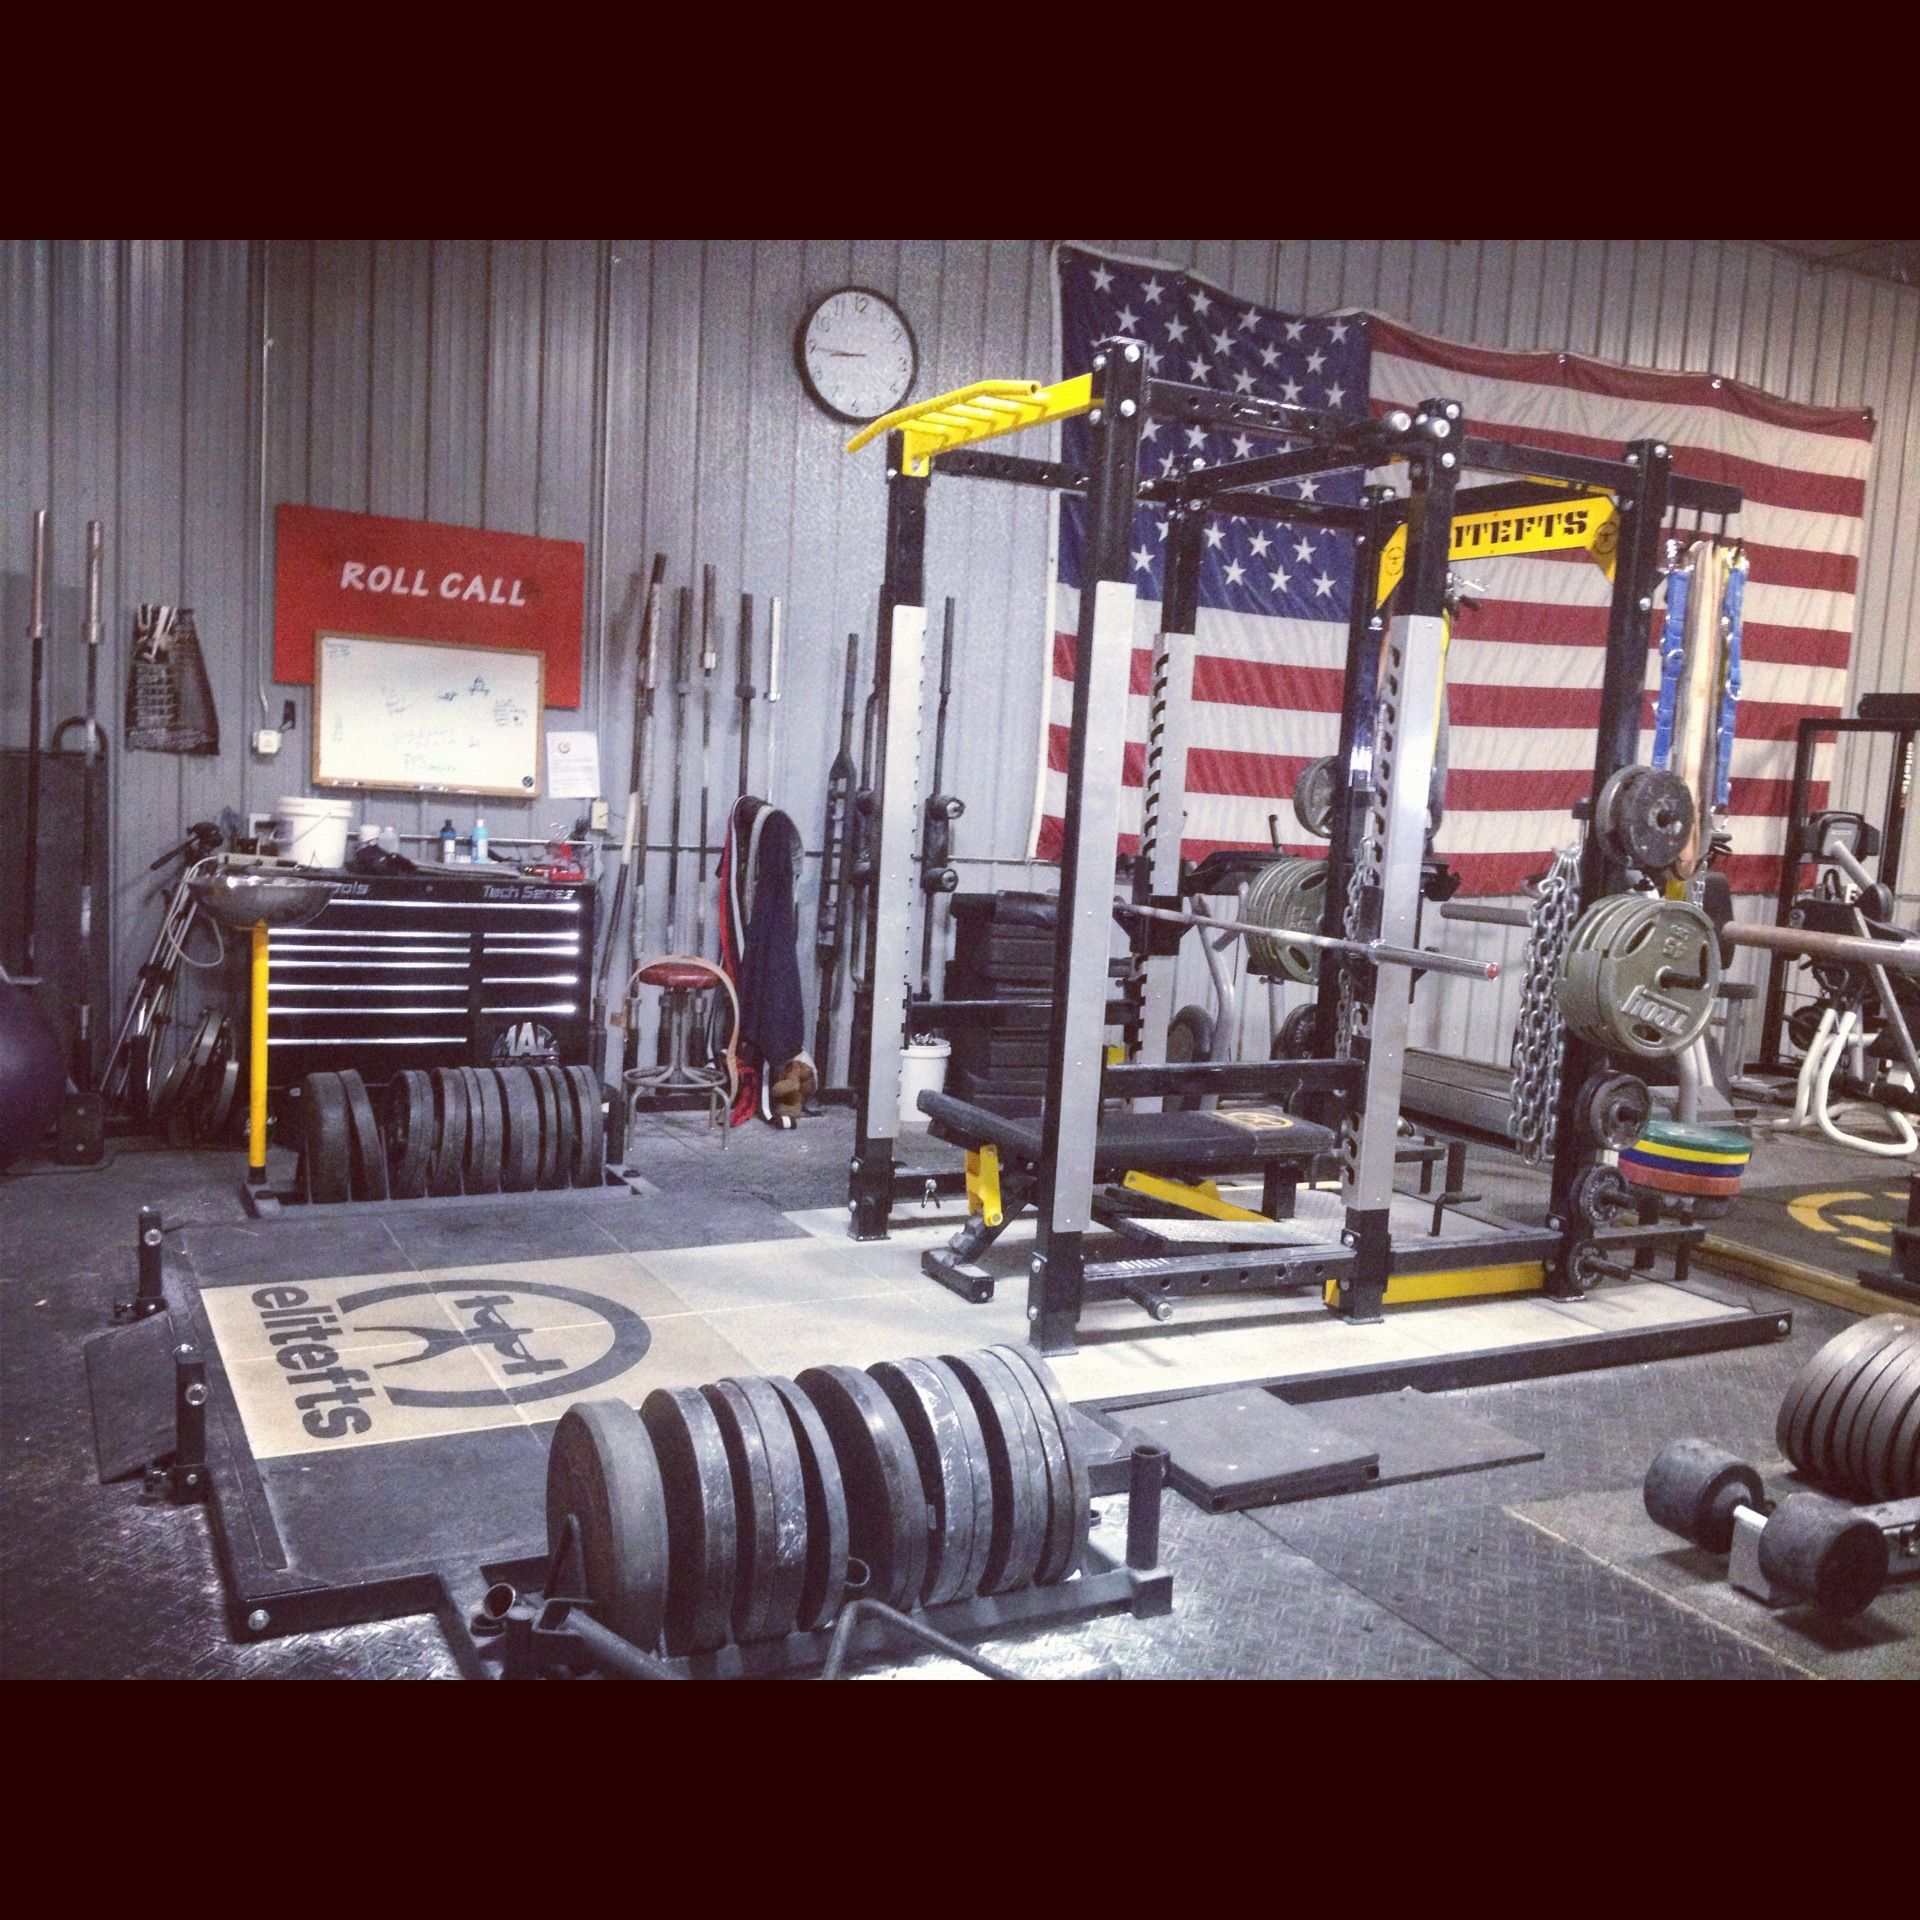 Elitefts Gym Pic Of The Day Www Elitefts Com No Equipment Workout Training Clothes Training Equipment